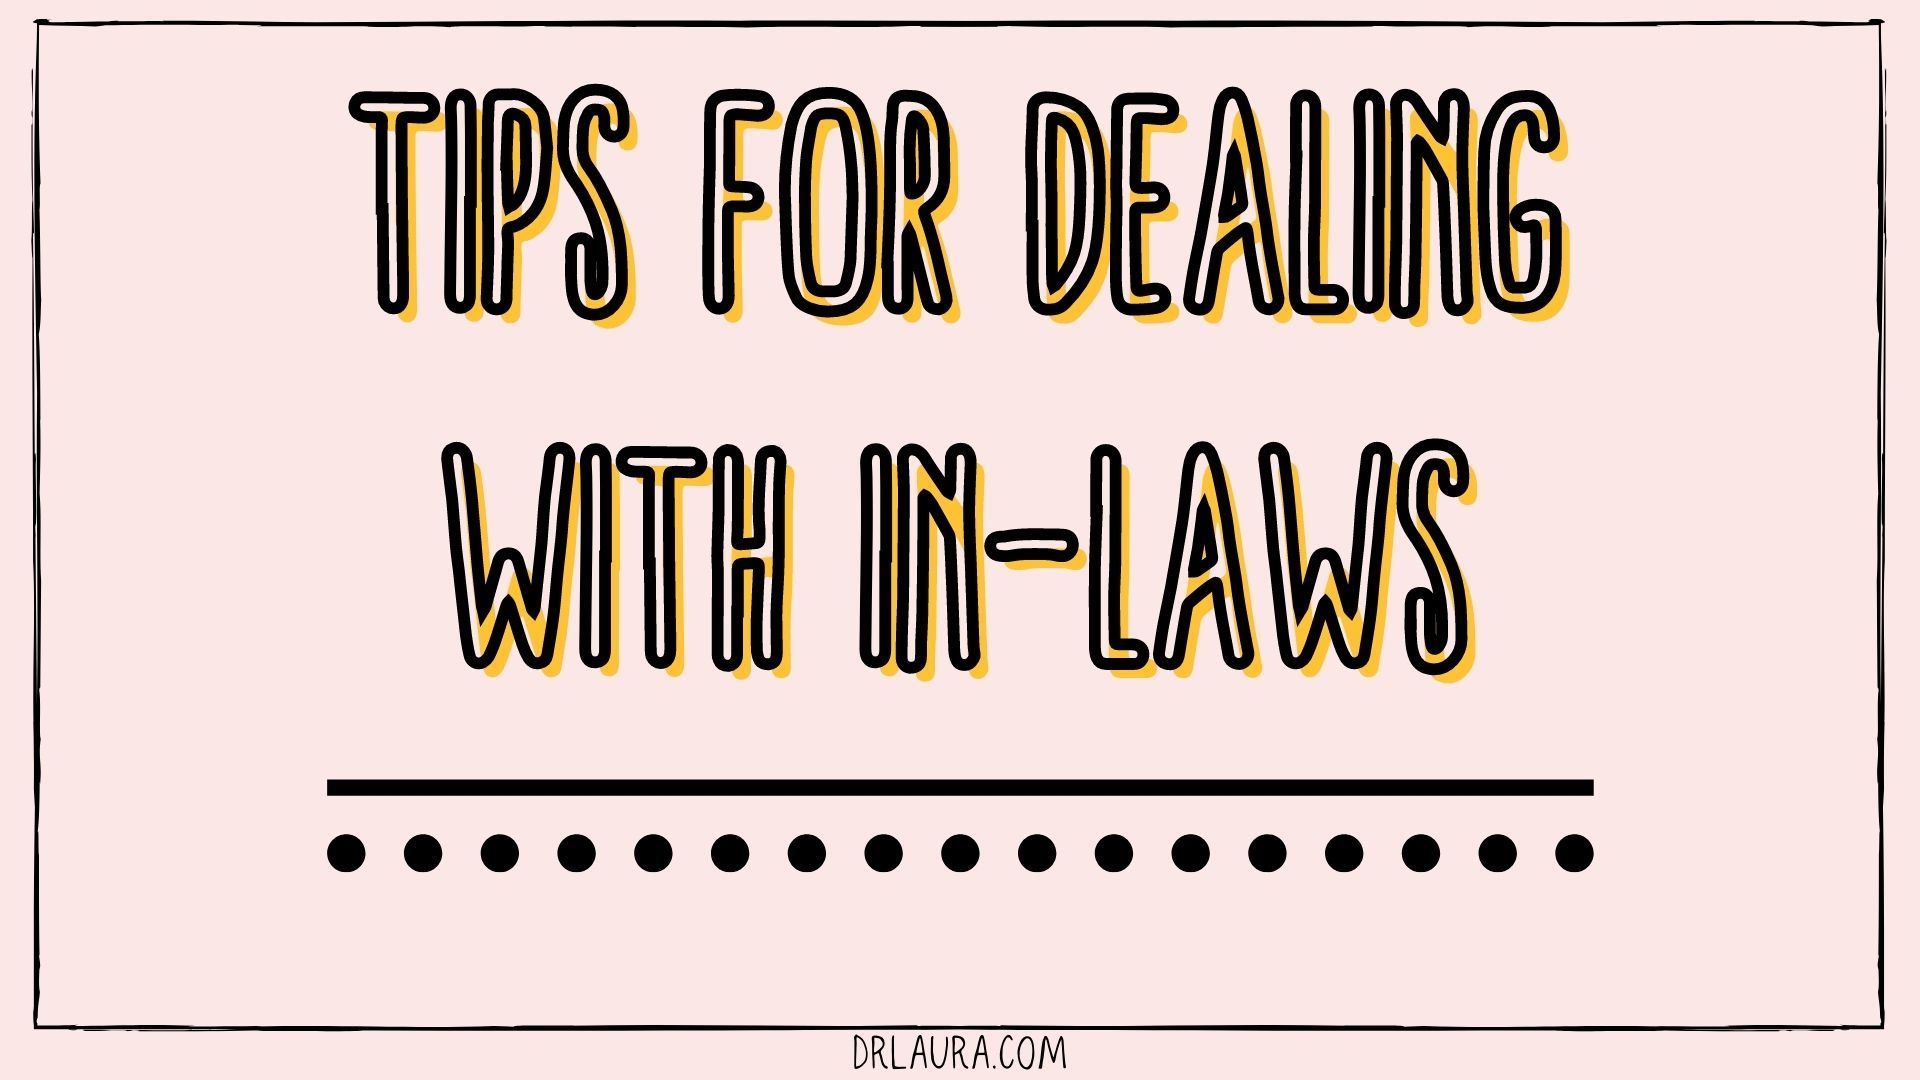 Blog: 6 Tips for Dealing with In-Laws